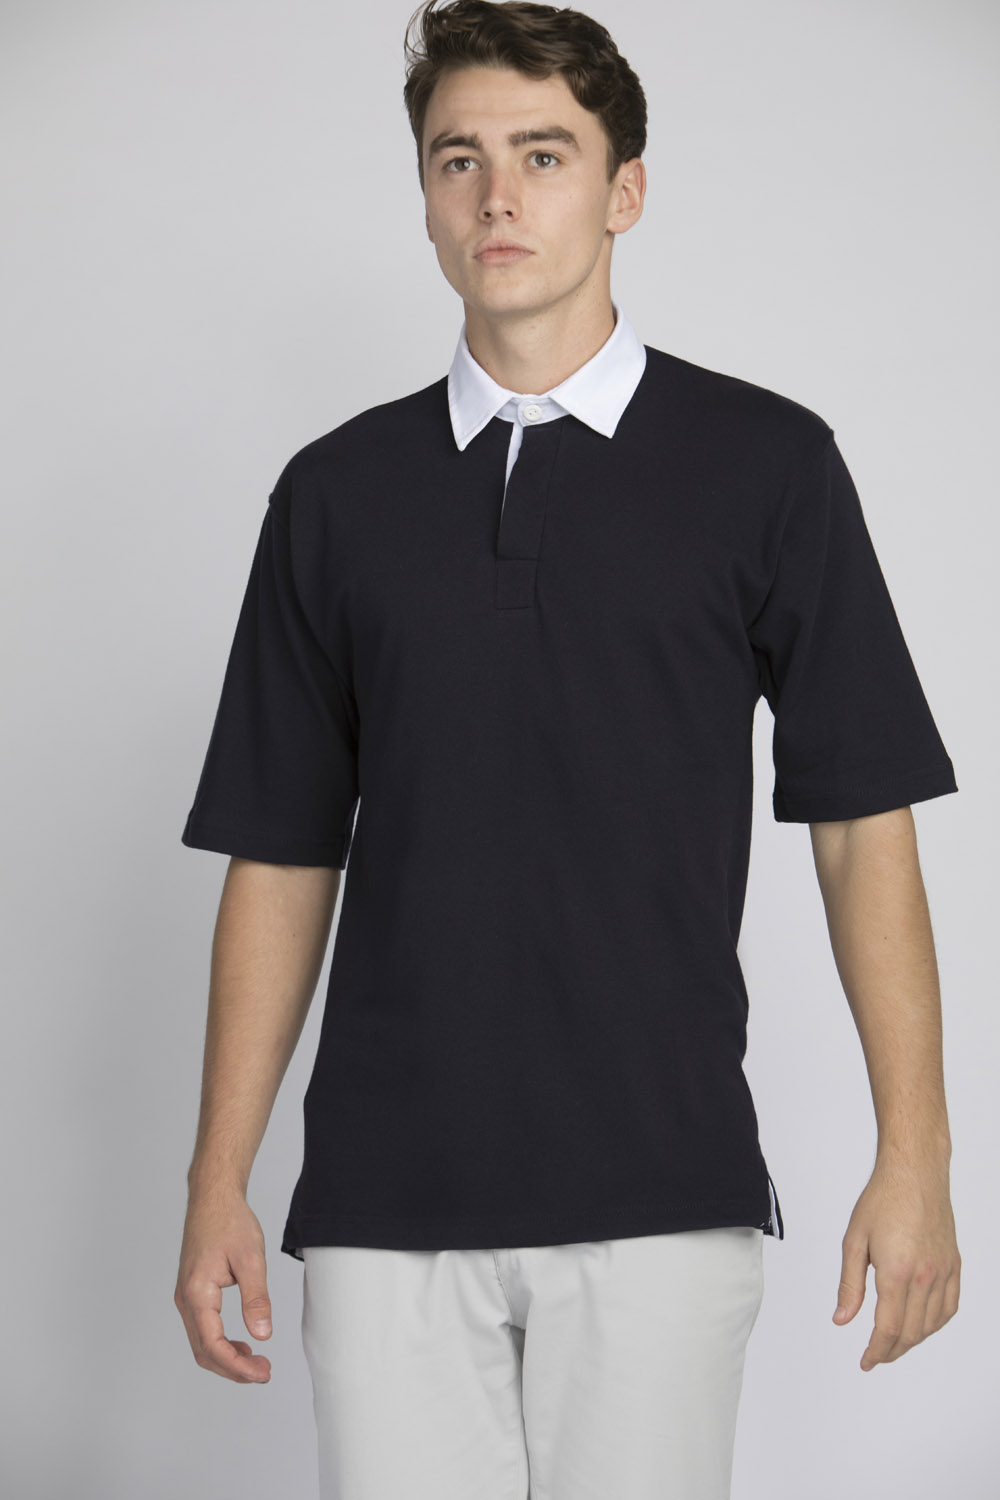 Front Row Short Sleeve Rugby Shirt Traditional Plain Casual Shirt FR003